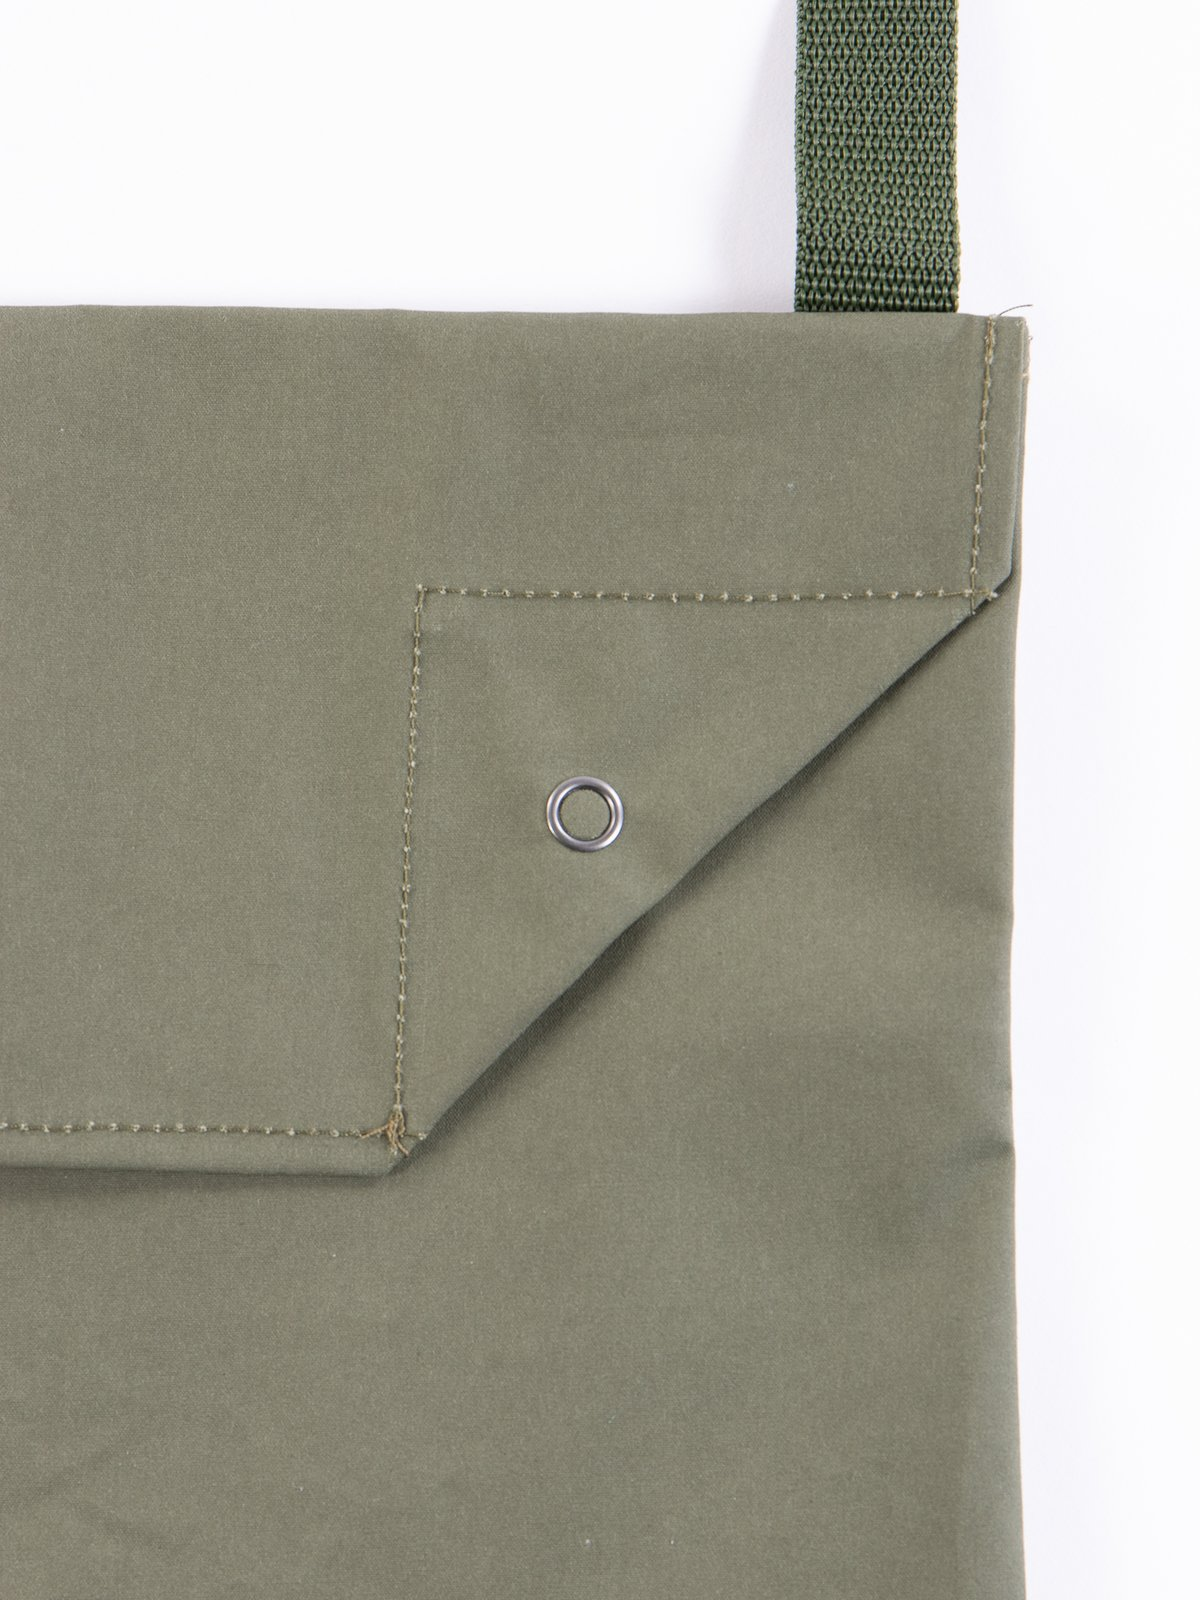 Olive Acrylic Coated Cotton Shoulder Pouch - Image 3